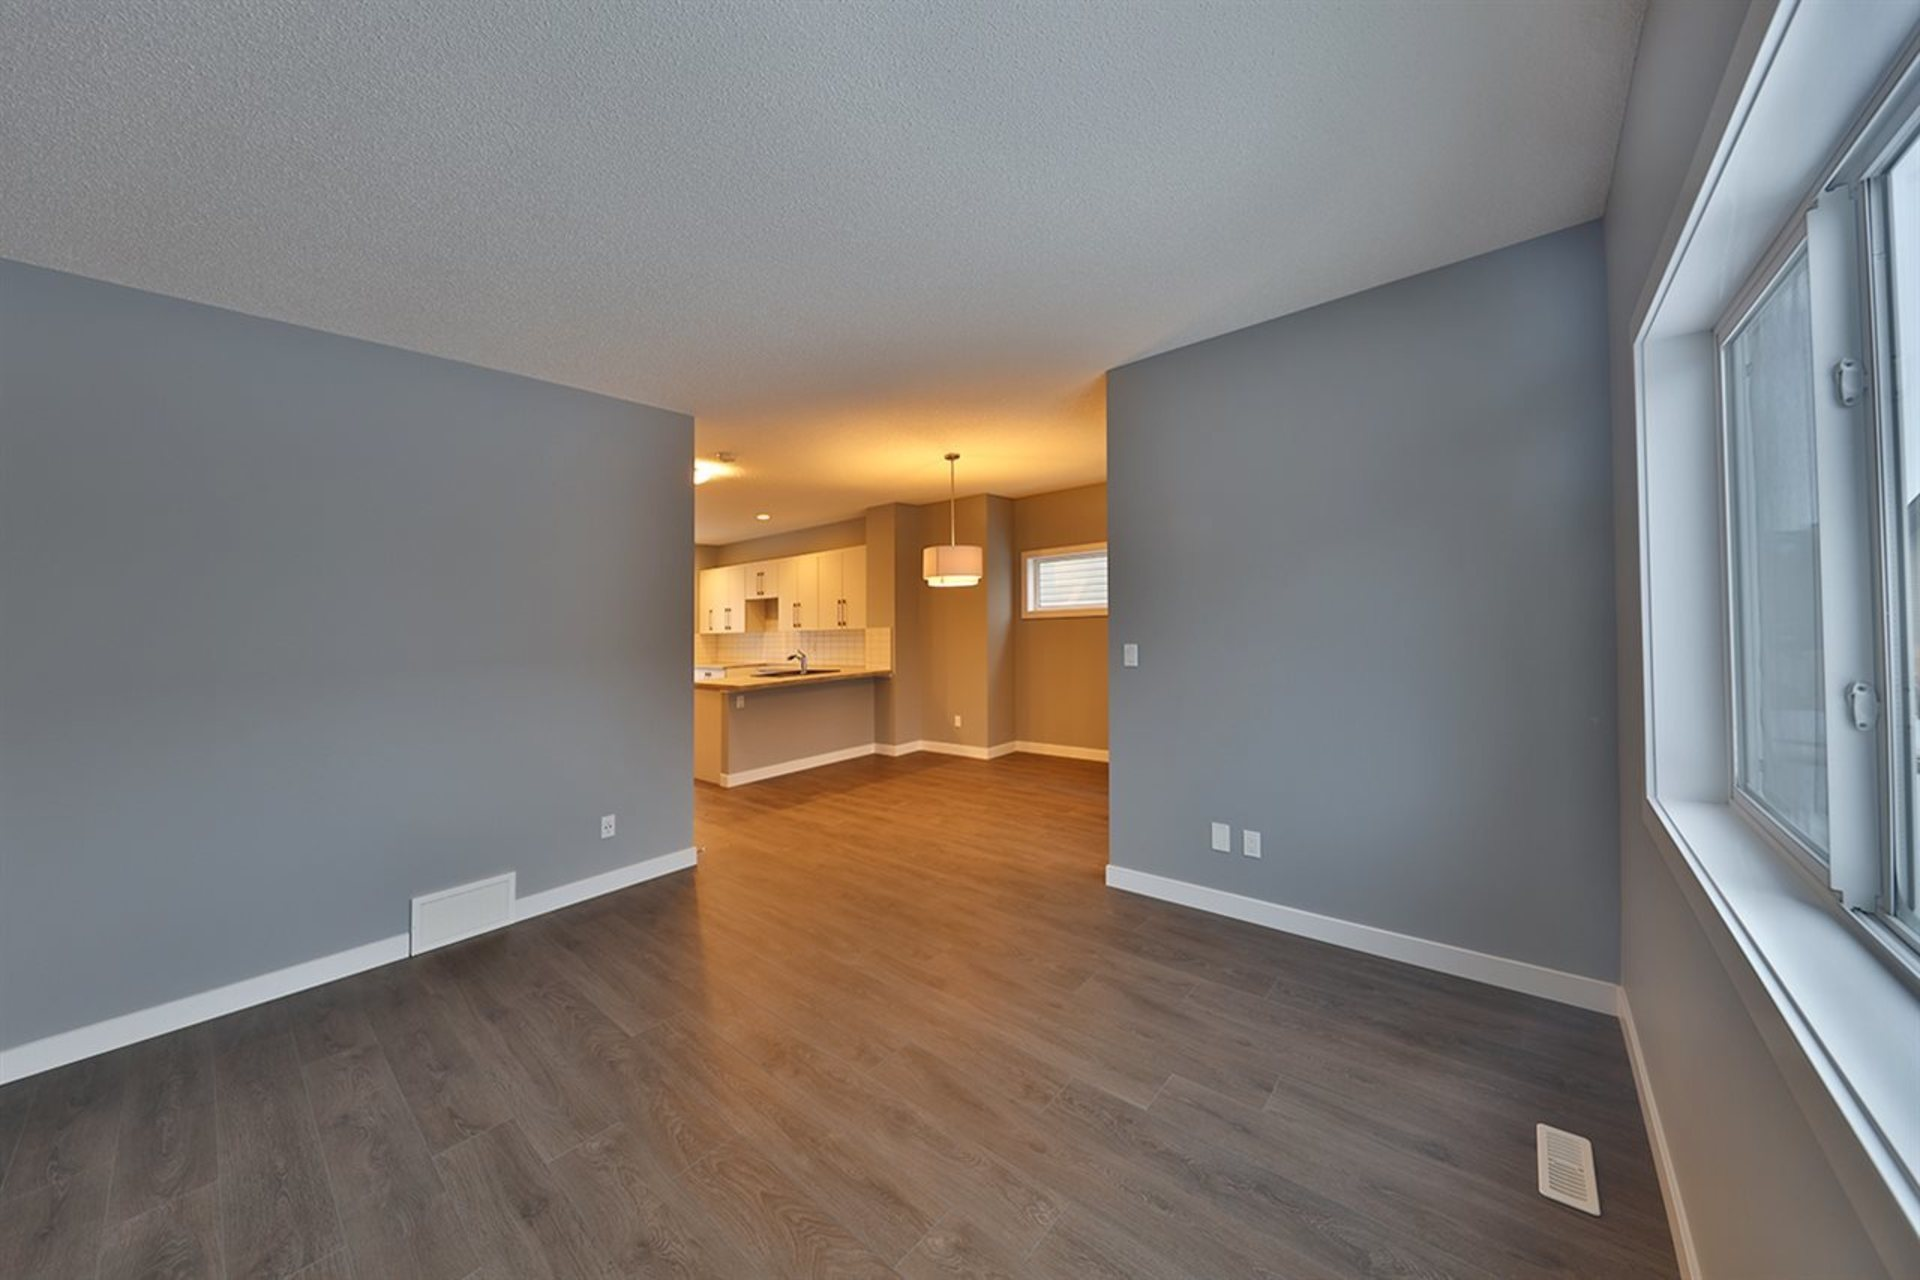 18112-78-street-crystallina-nera-west-edmonton-06 at 18112 78 Street, Crystallina Nera West, Edmonton